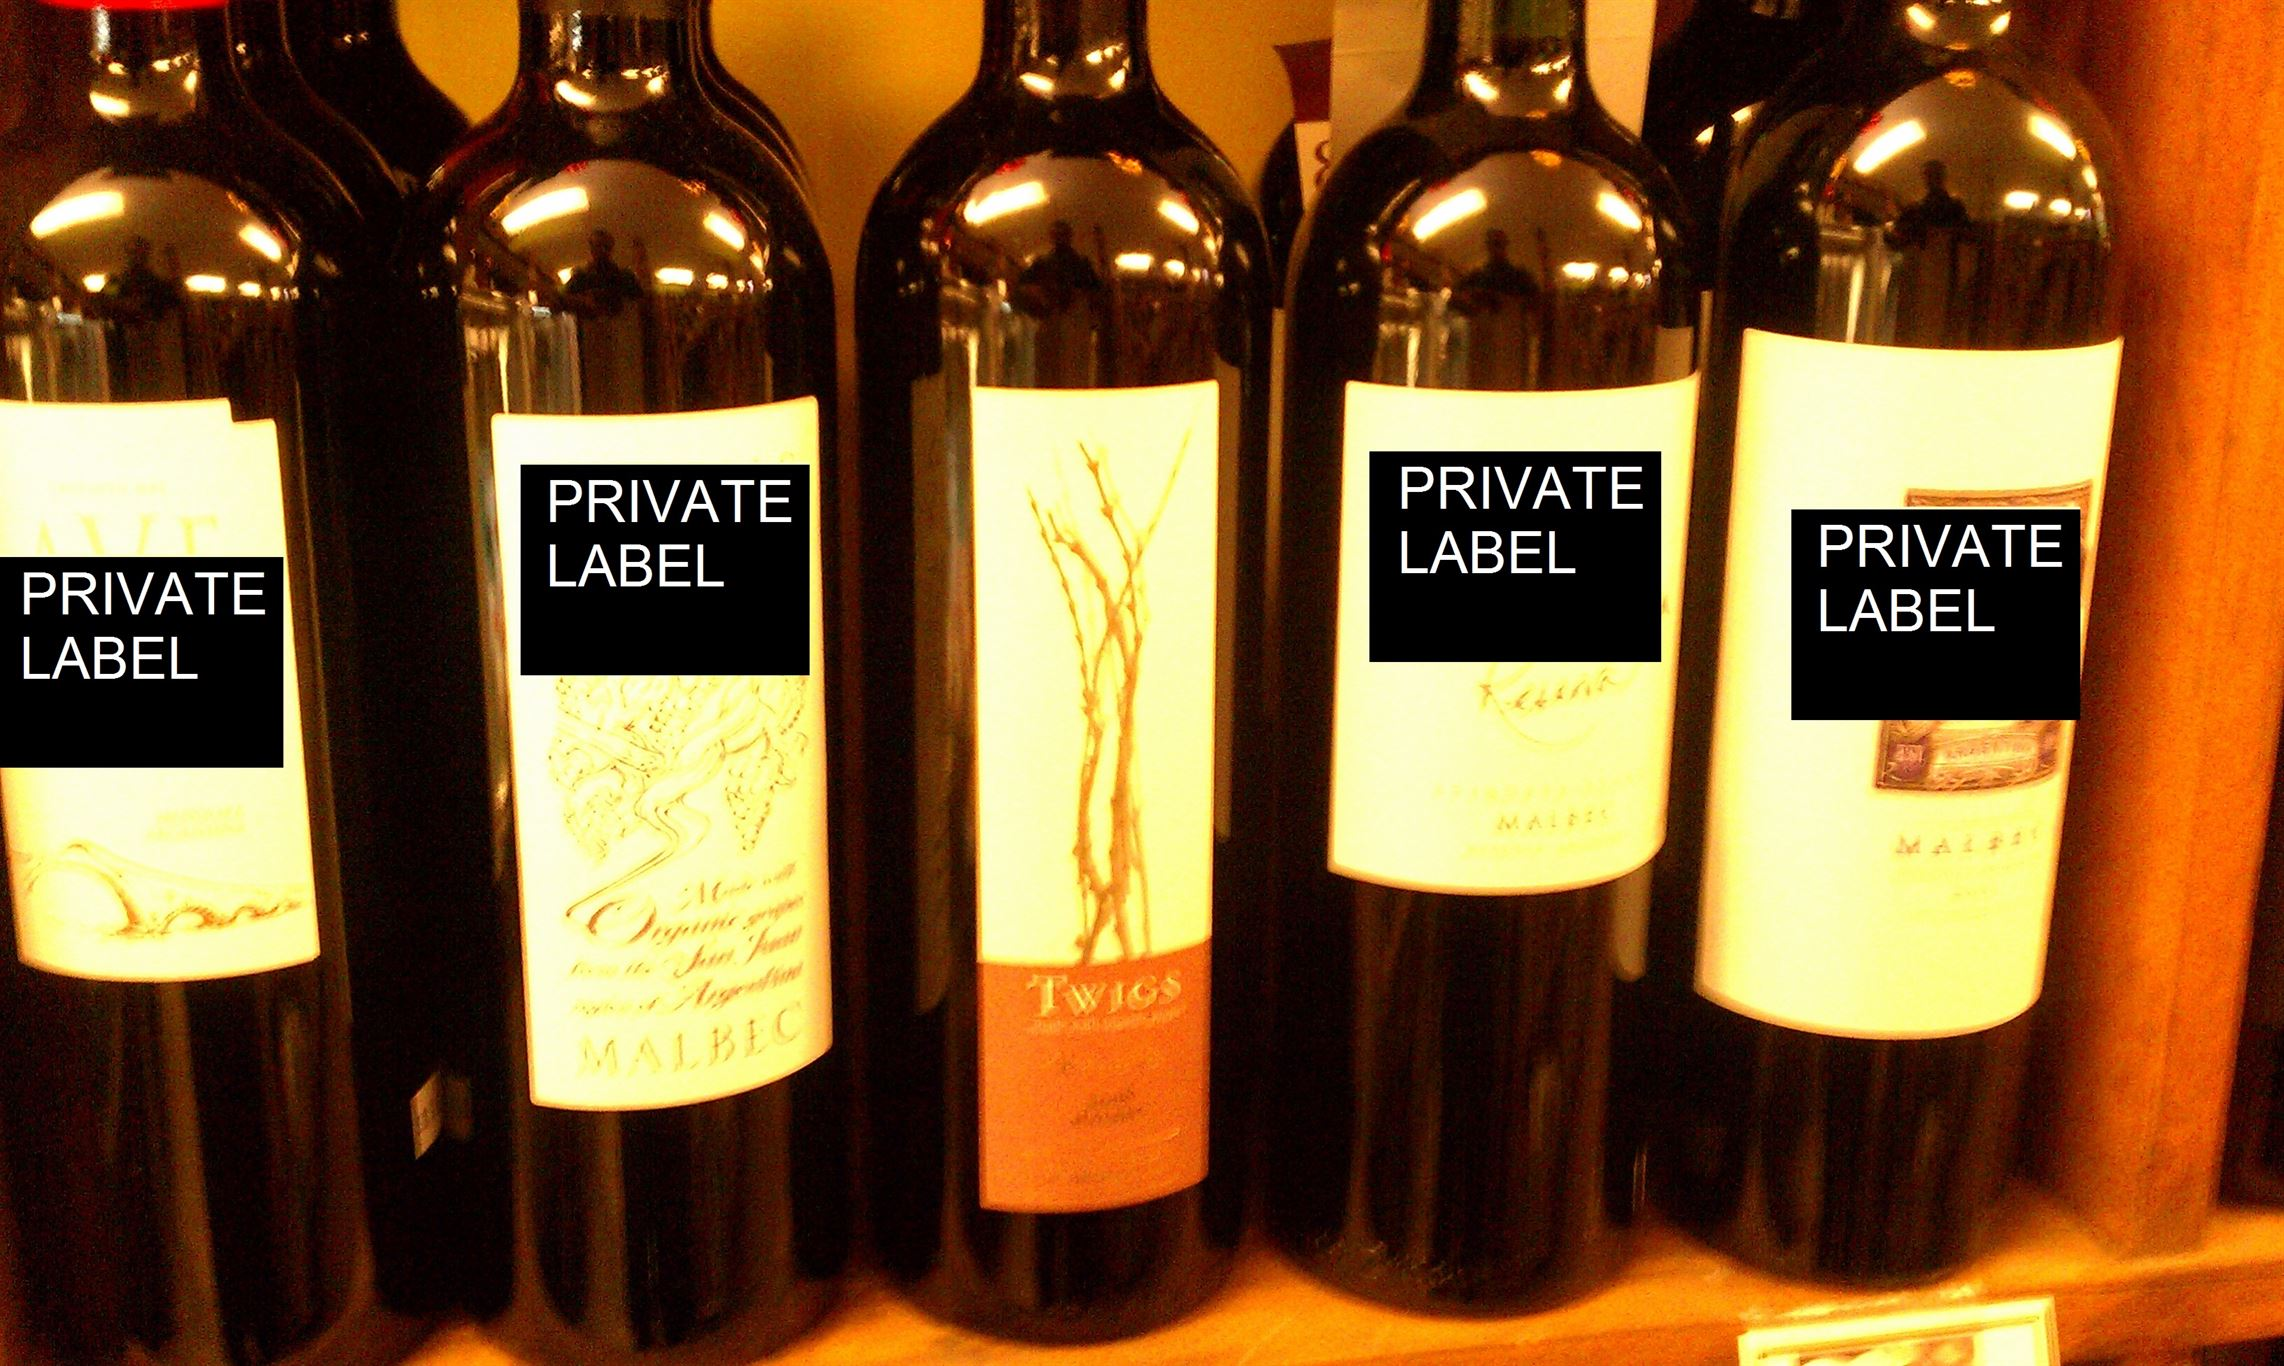 Private Label Wine Strategy For Growth